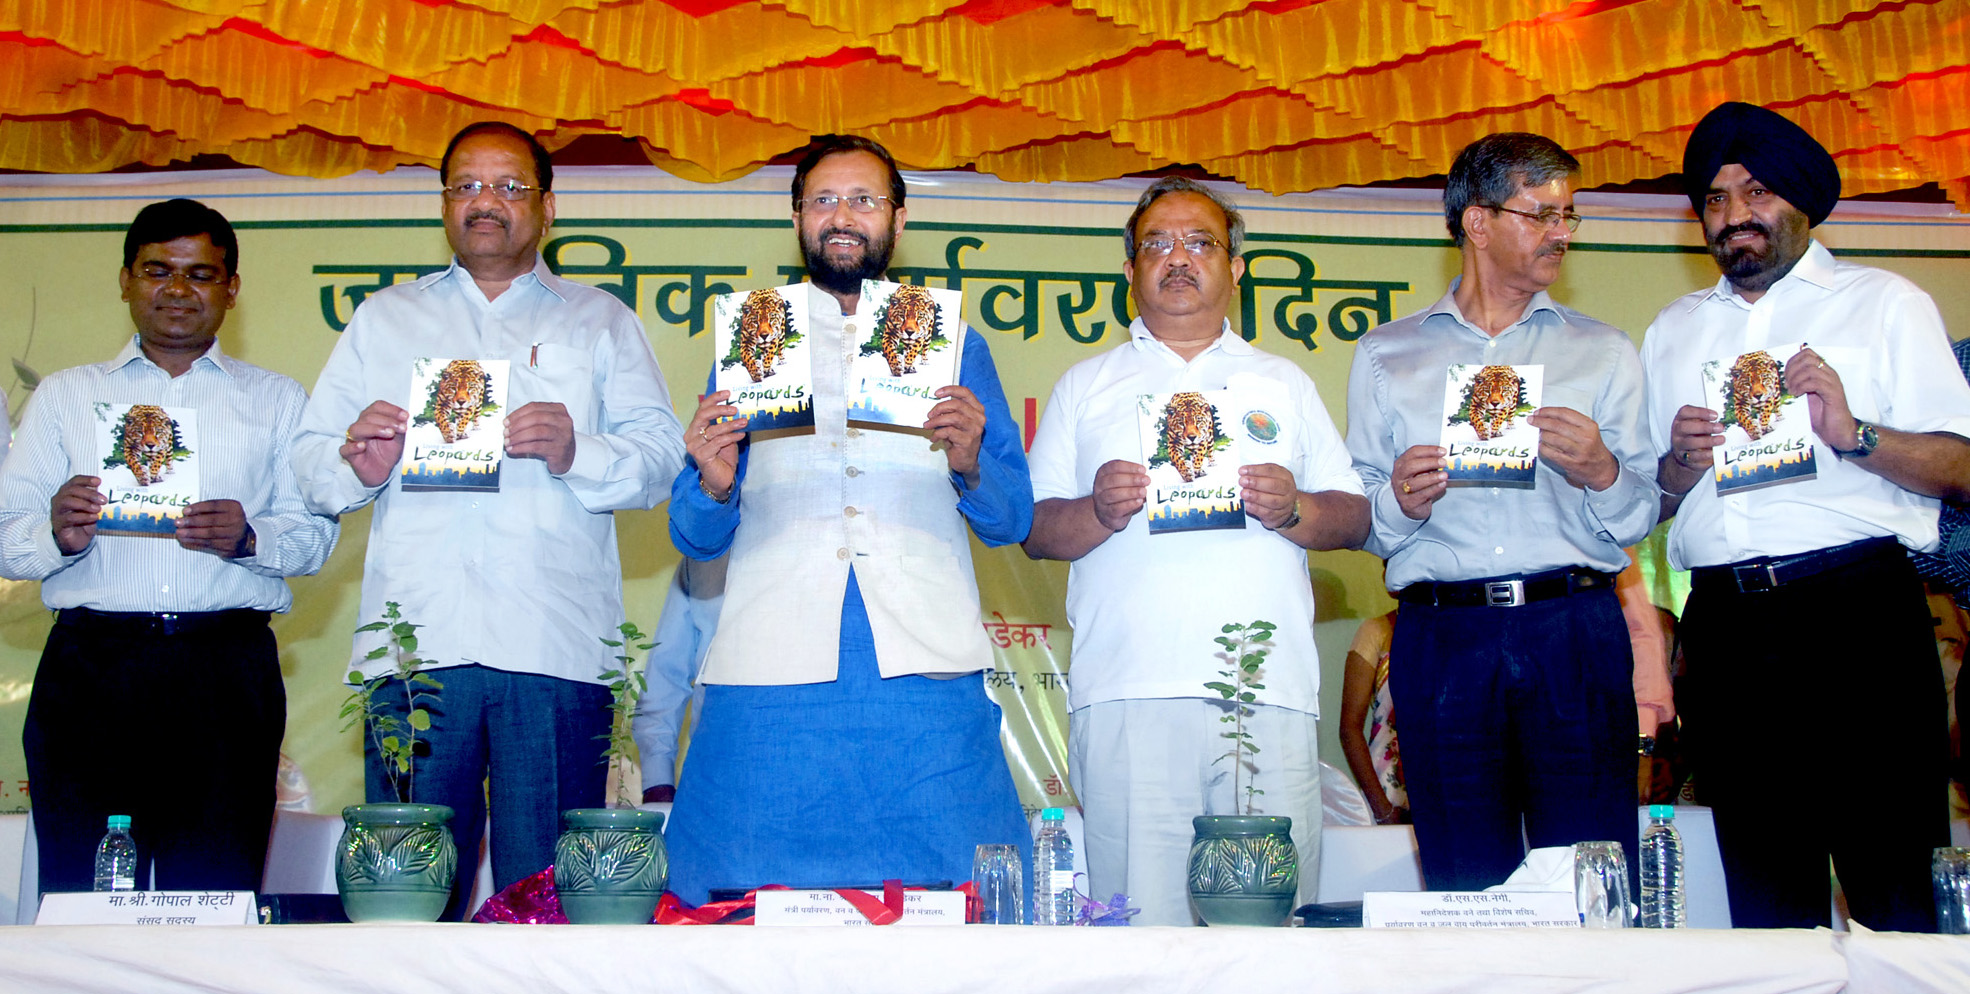 Releasing a Marathi leaflet 'Living with